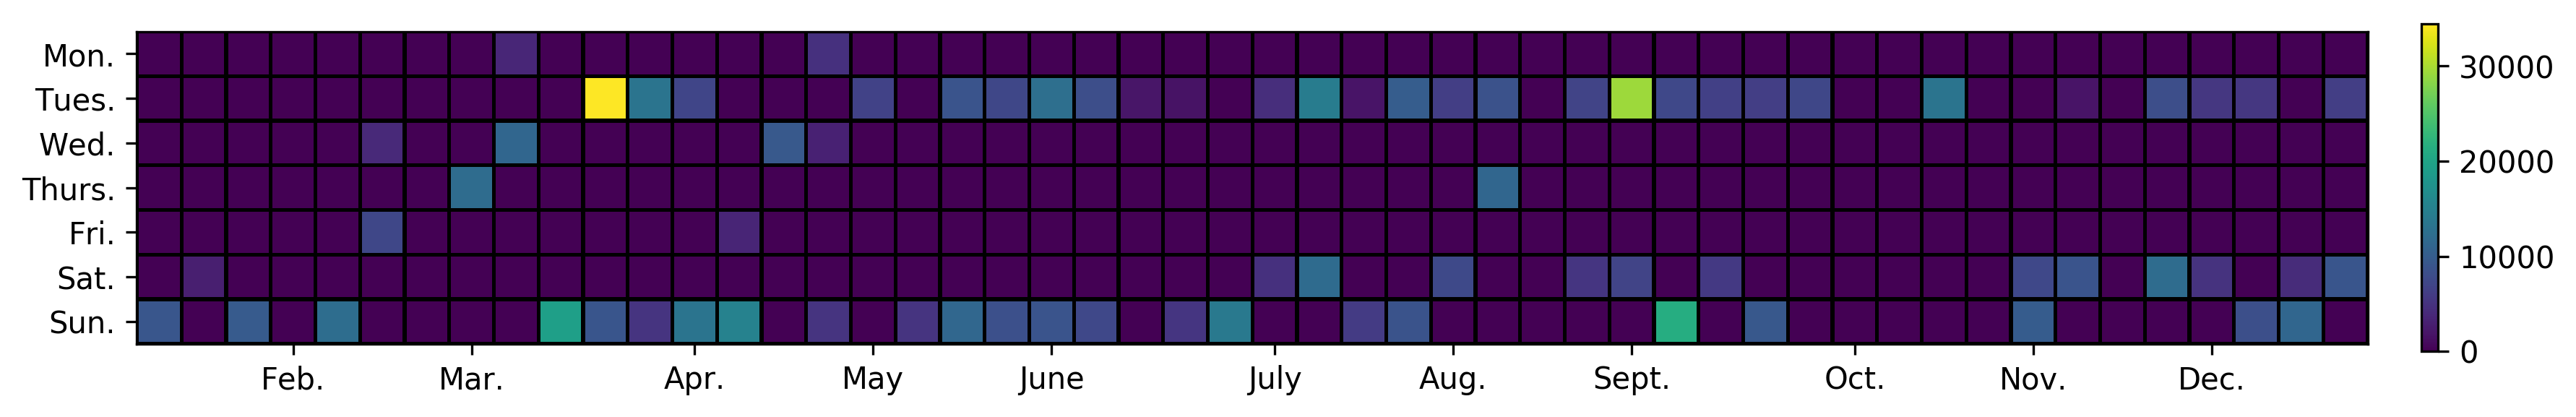 Calendar histogram #characters published per day